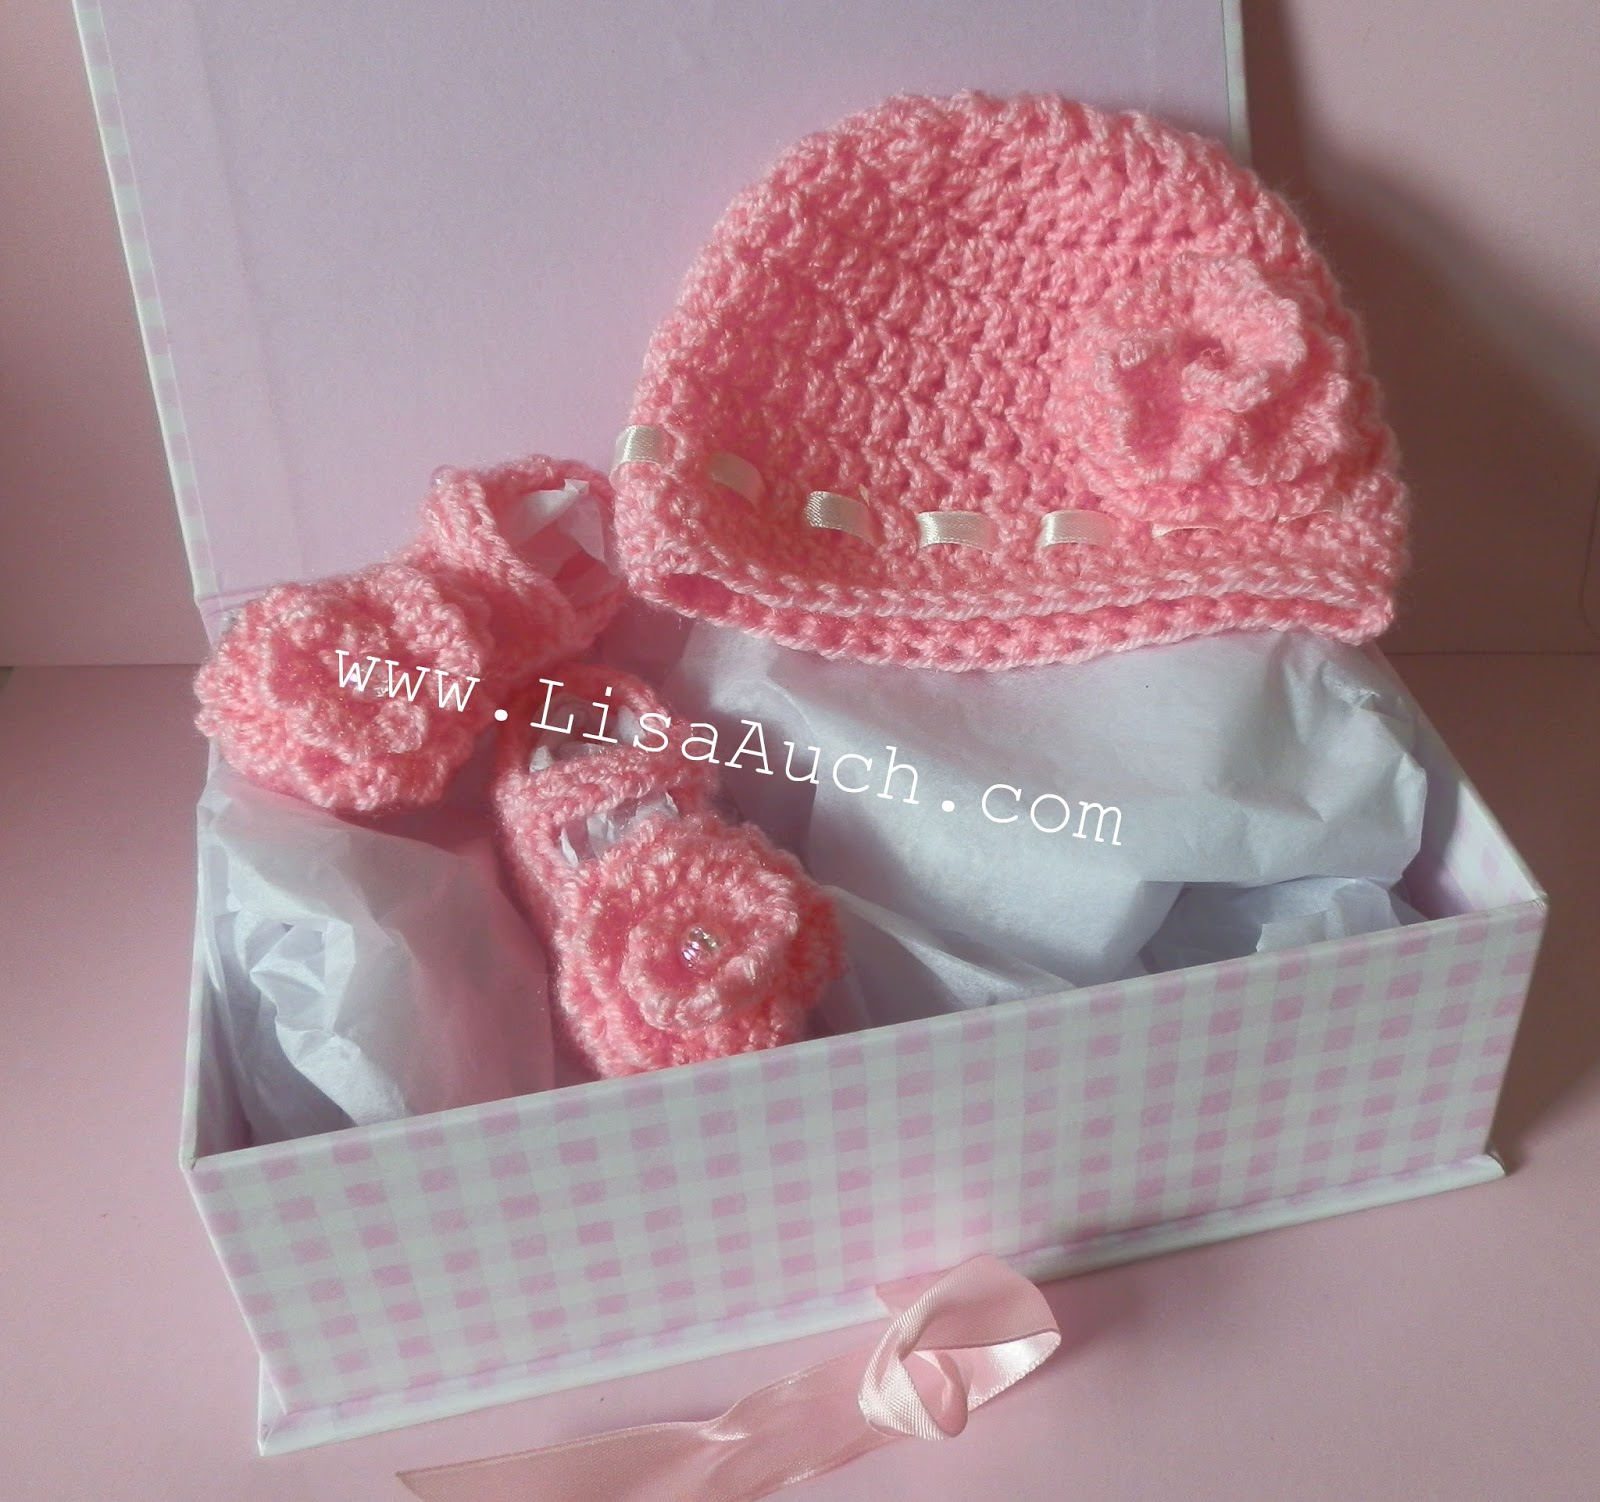 Crochet Baby Hat Booties Patterns Free : FREE CROCHET BABY BUNTING SET PATTERN - Crochet and ...